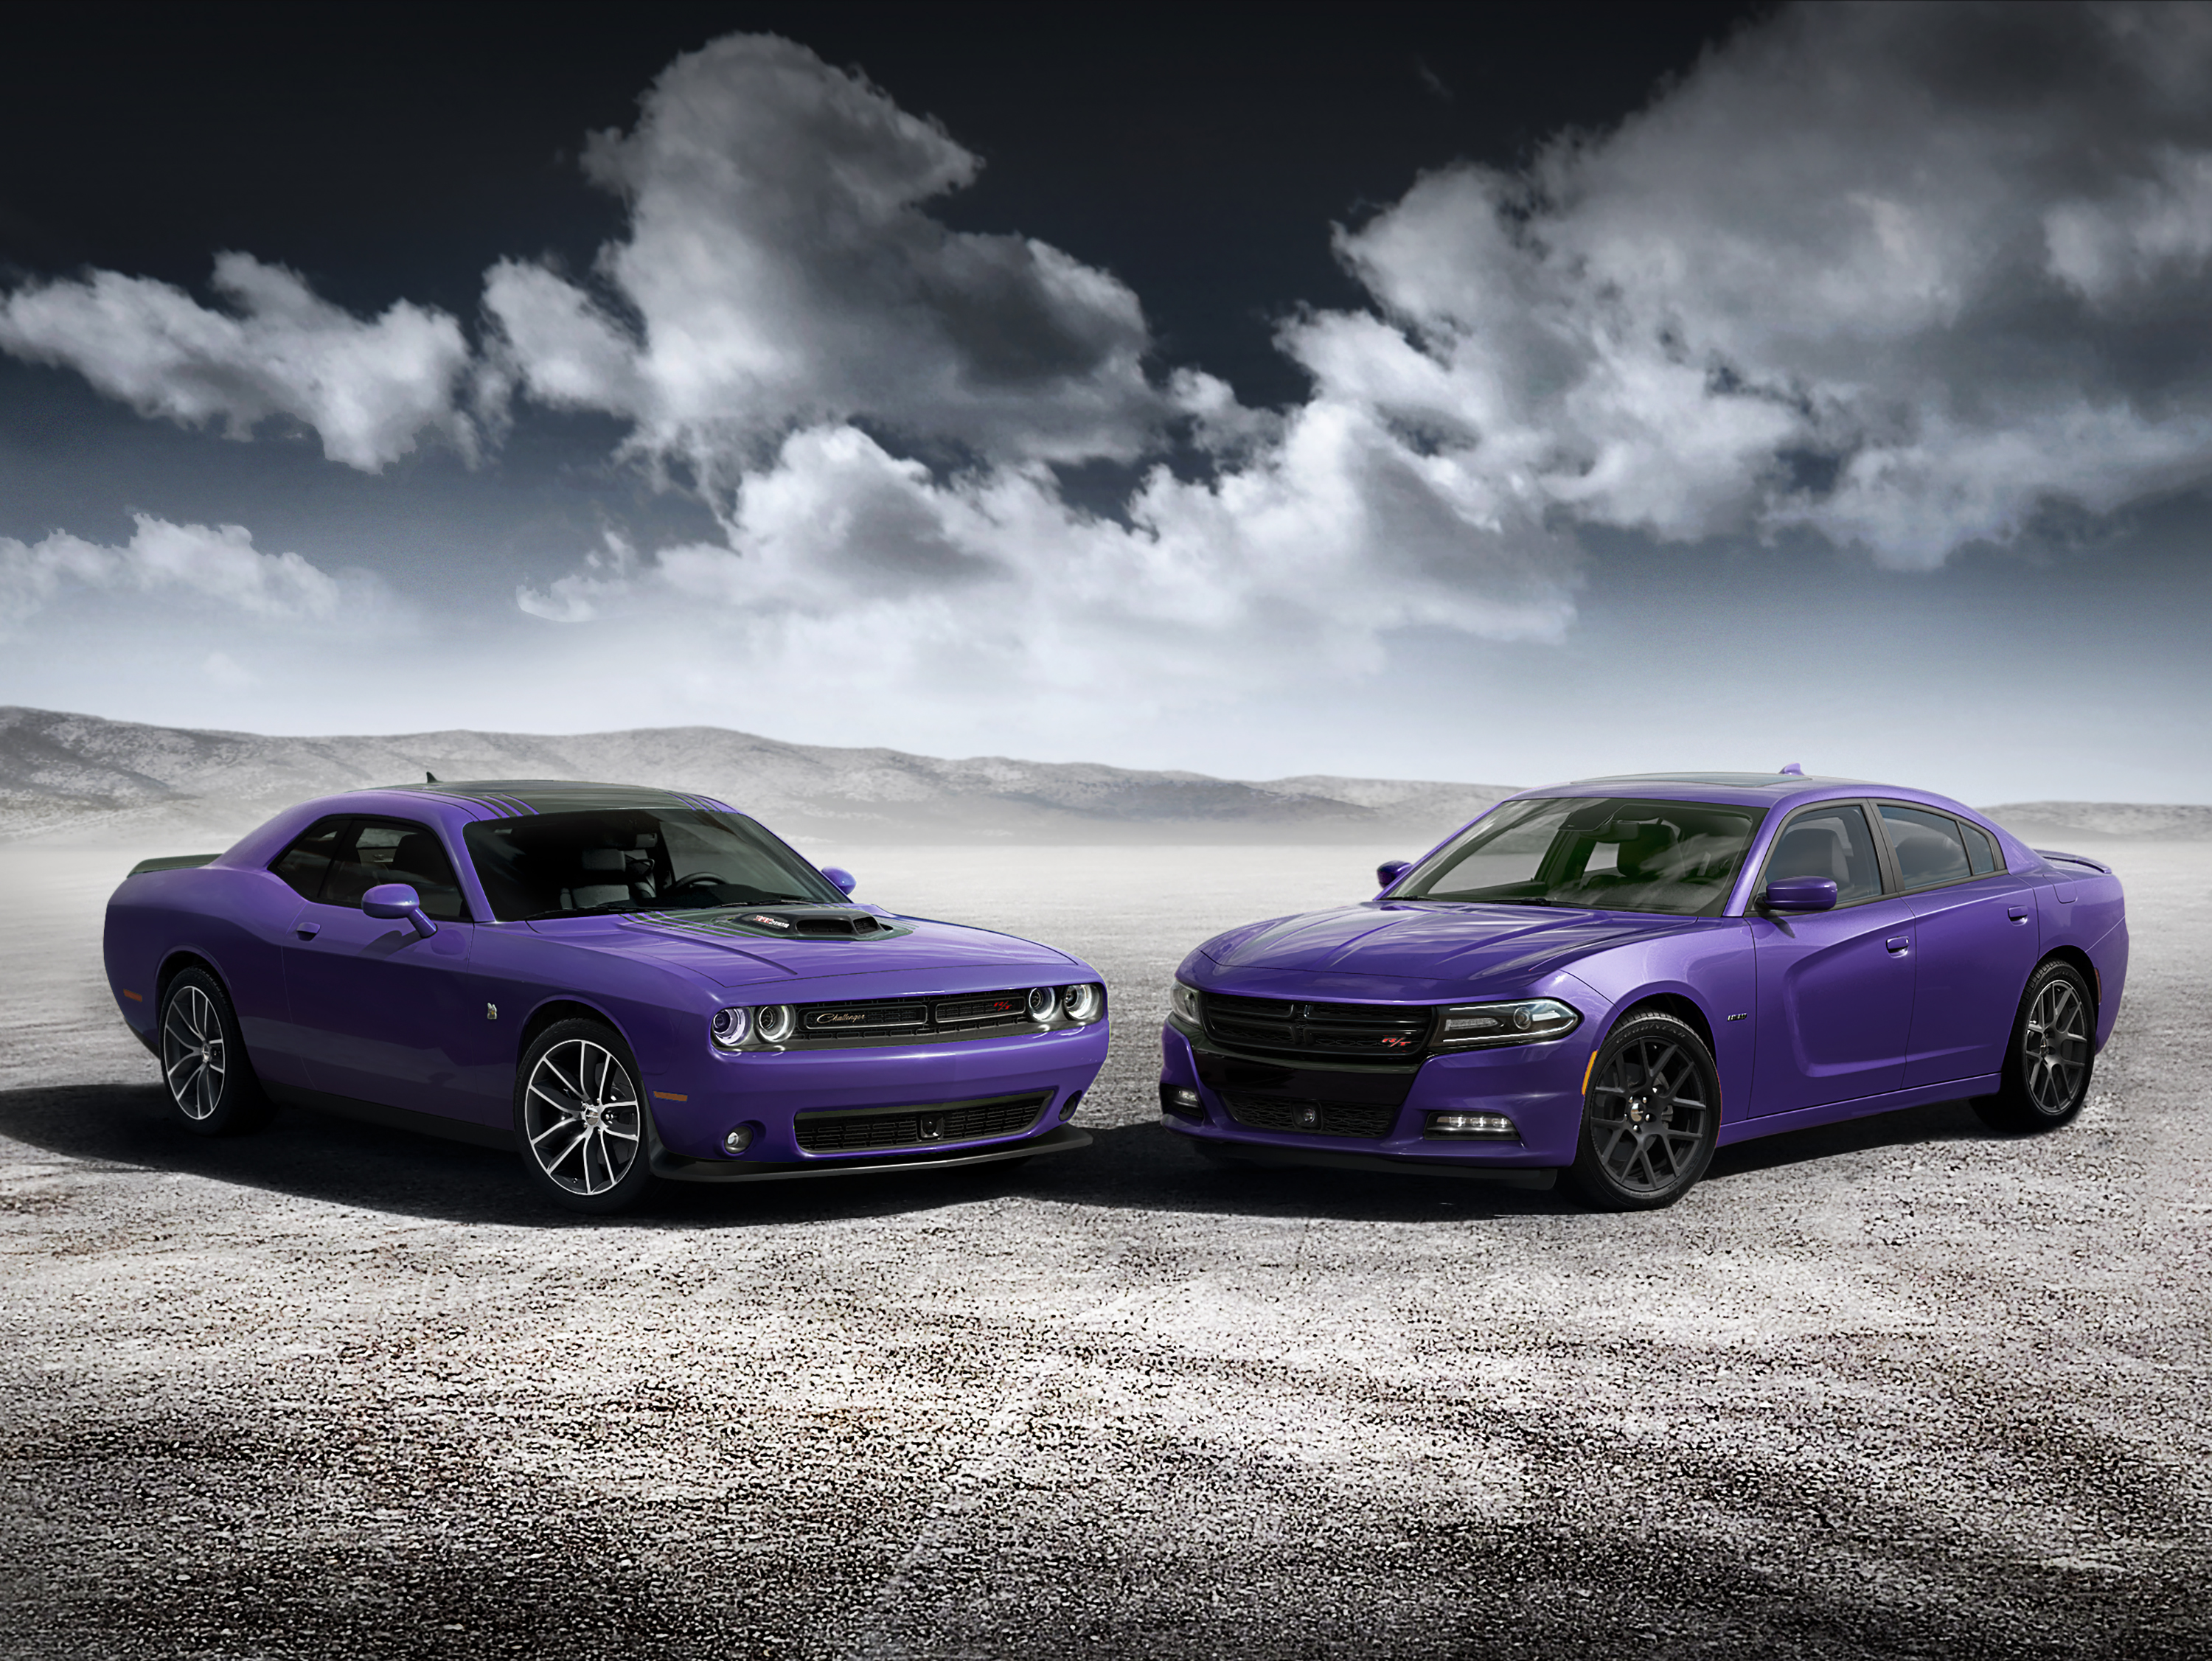 2016 Dodge Challenger 392 HEMI® Scat Pack Shaker (left) and Cha